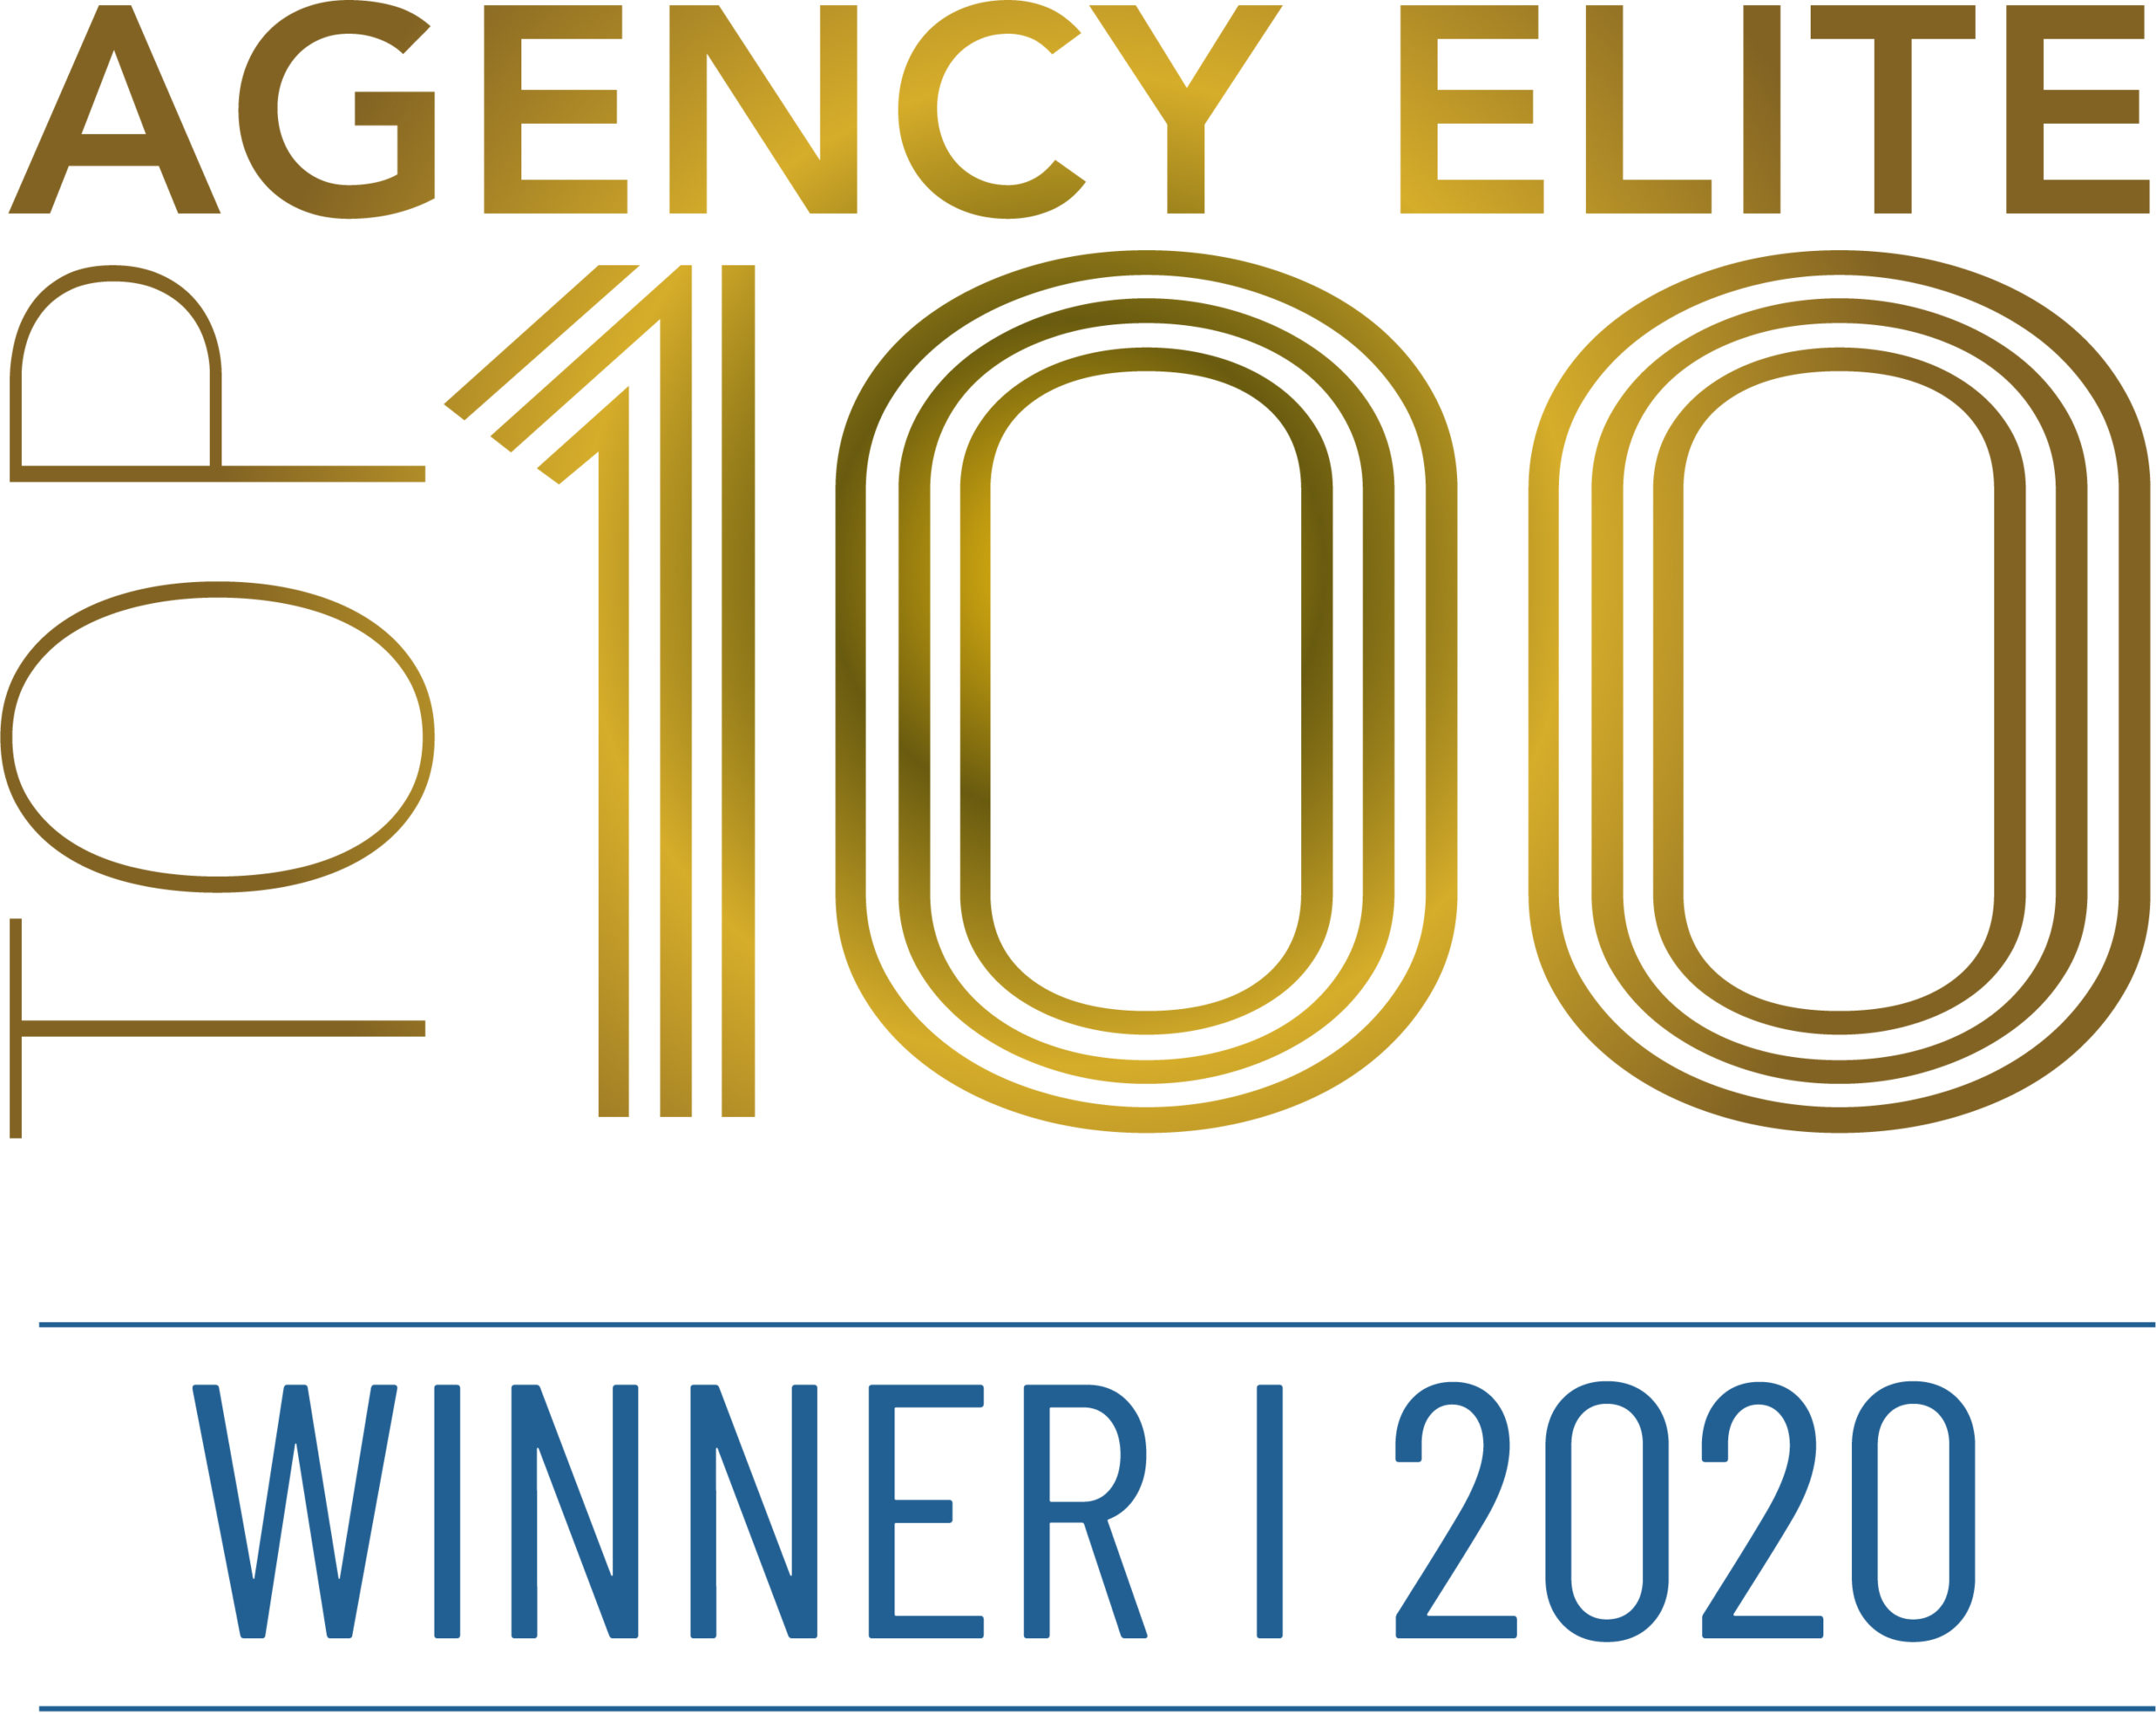 PRNews-Agency-Elite-Top-100-Logo-scaled